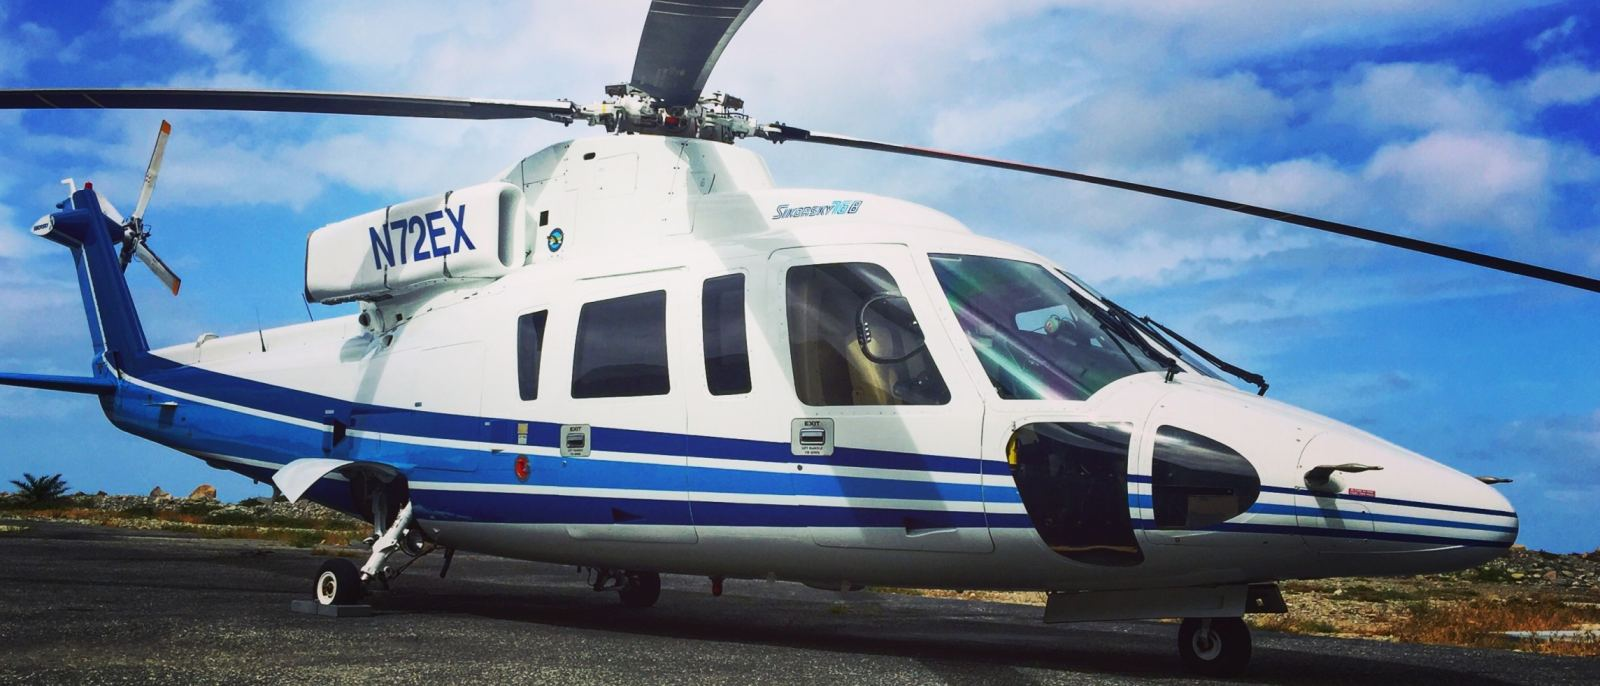 IEX Helicopters